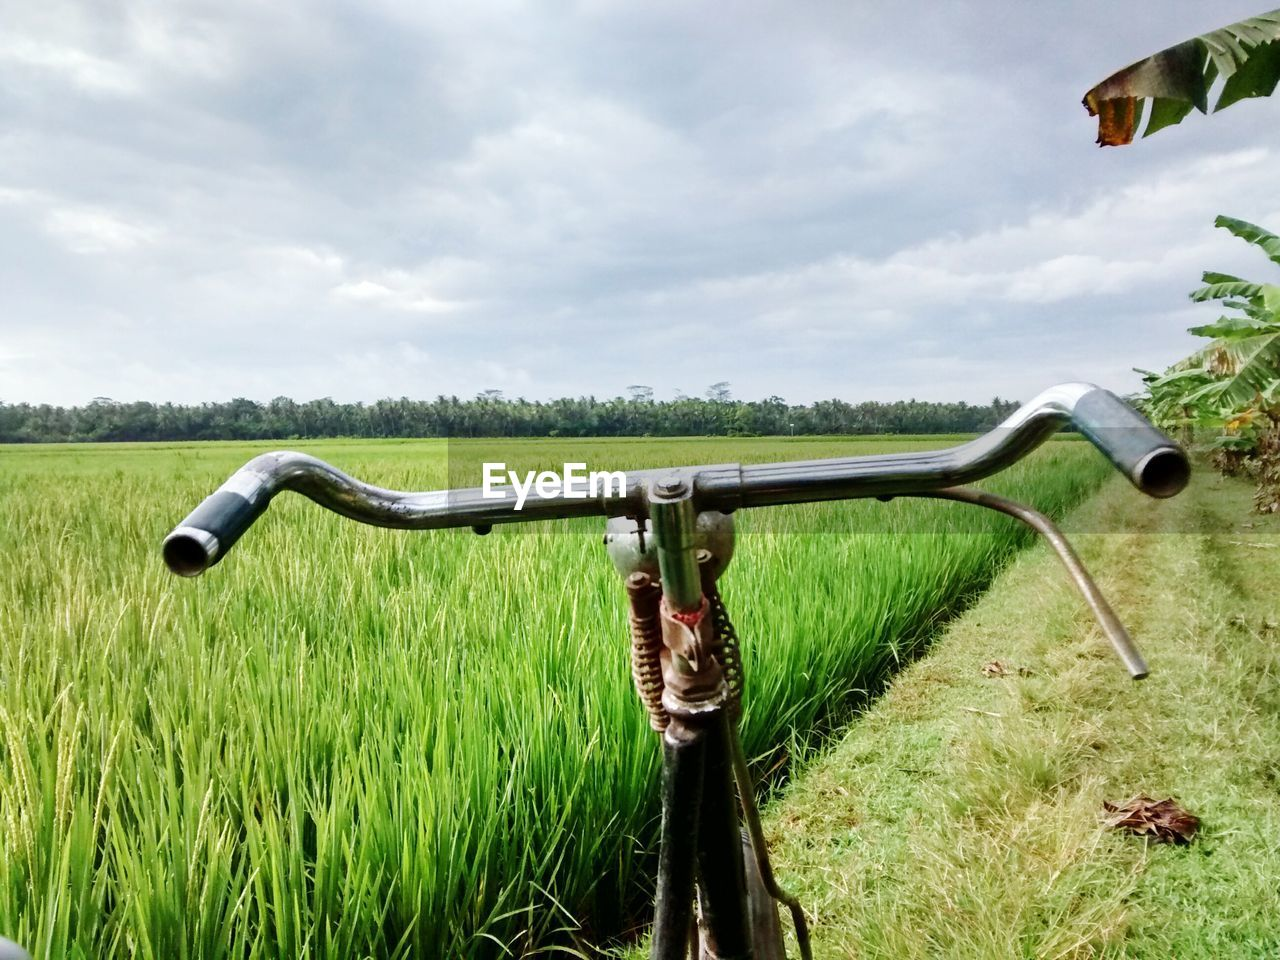 Cropped image of bicycle on grassy field against cloudy sky